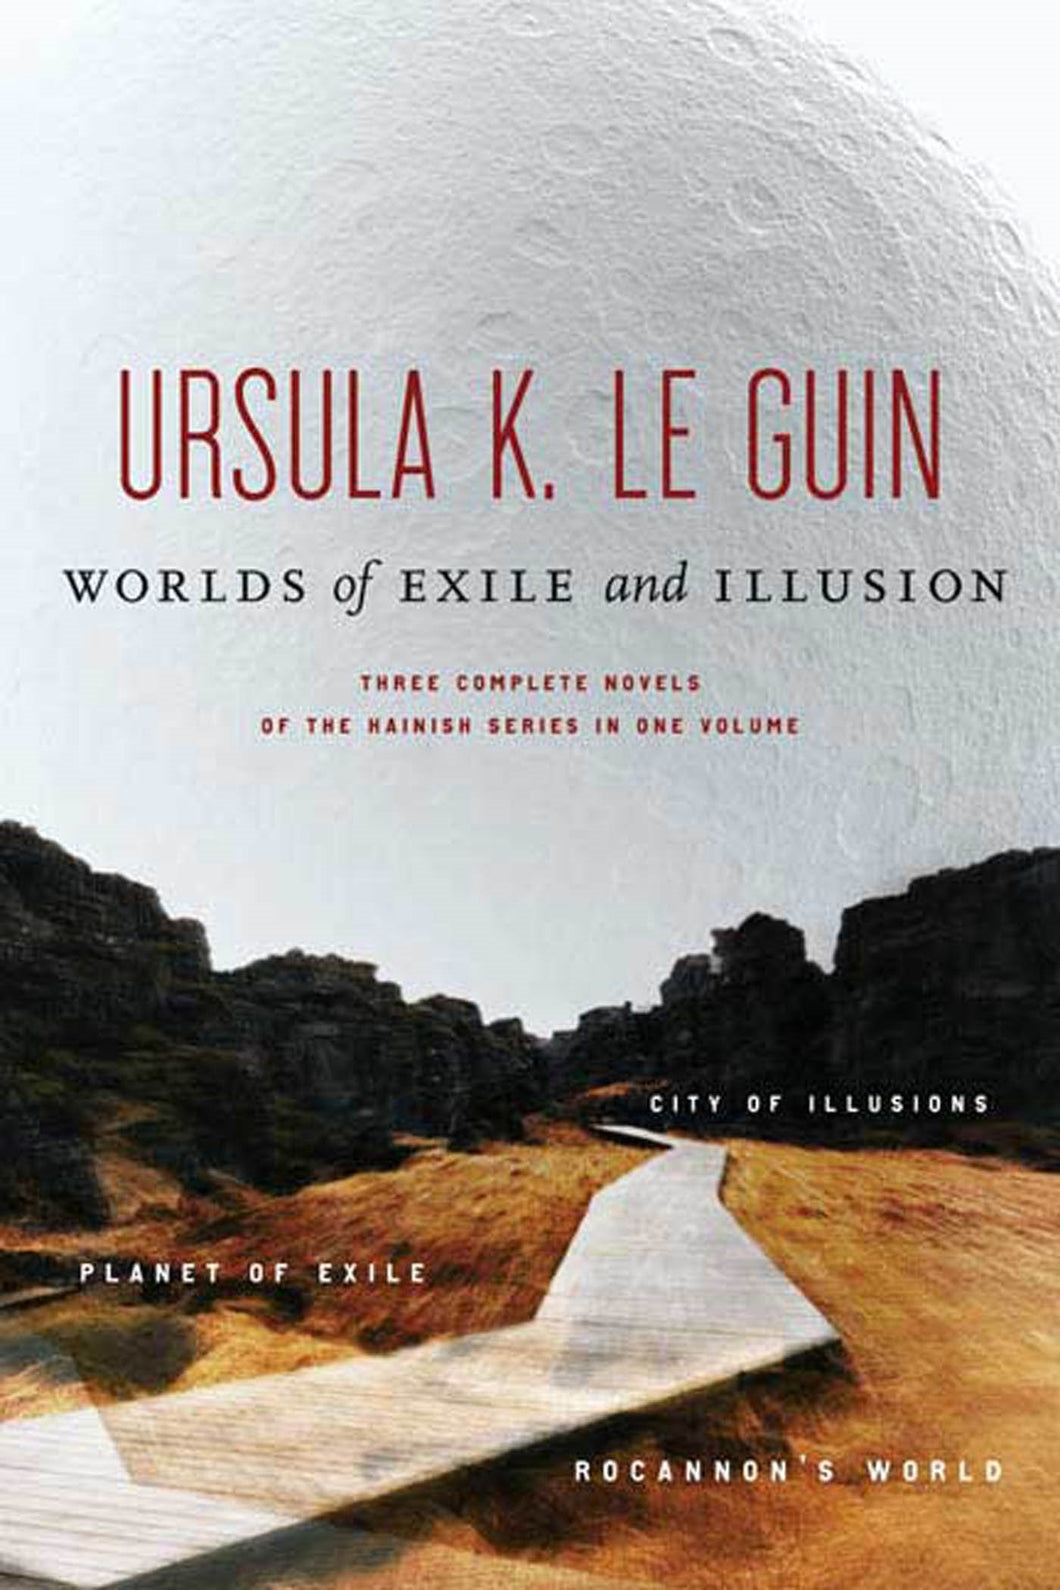 Worlds of Exile and Illusion by Ursula Le Guin